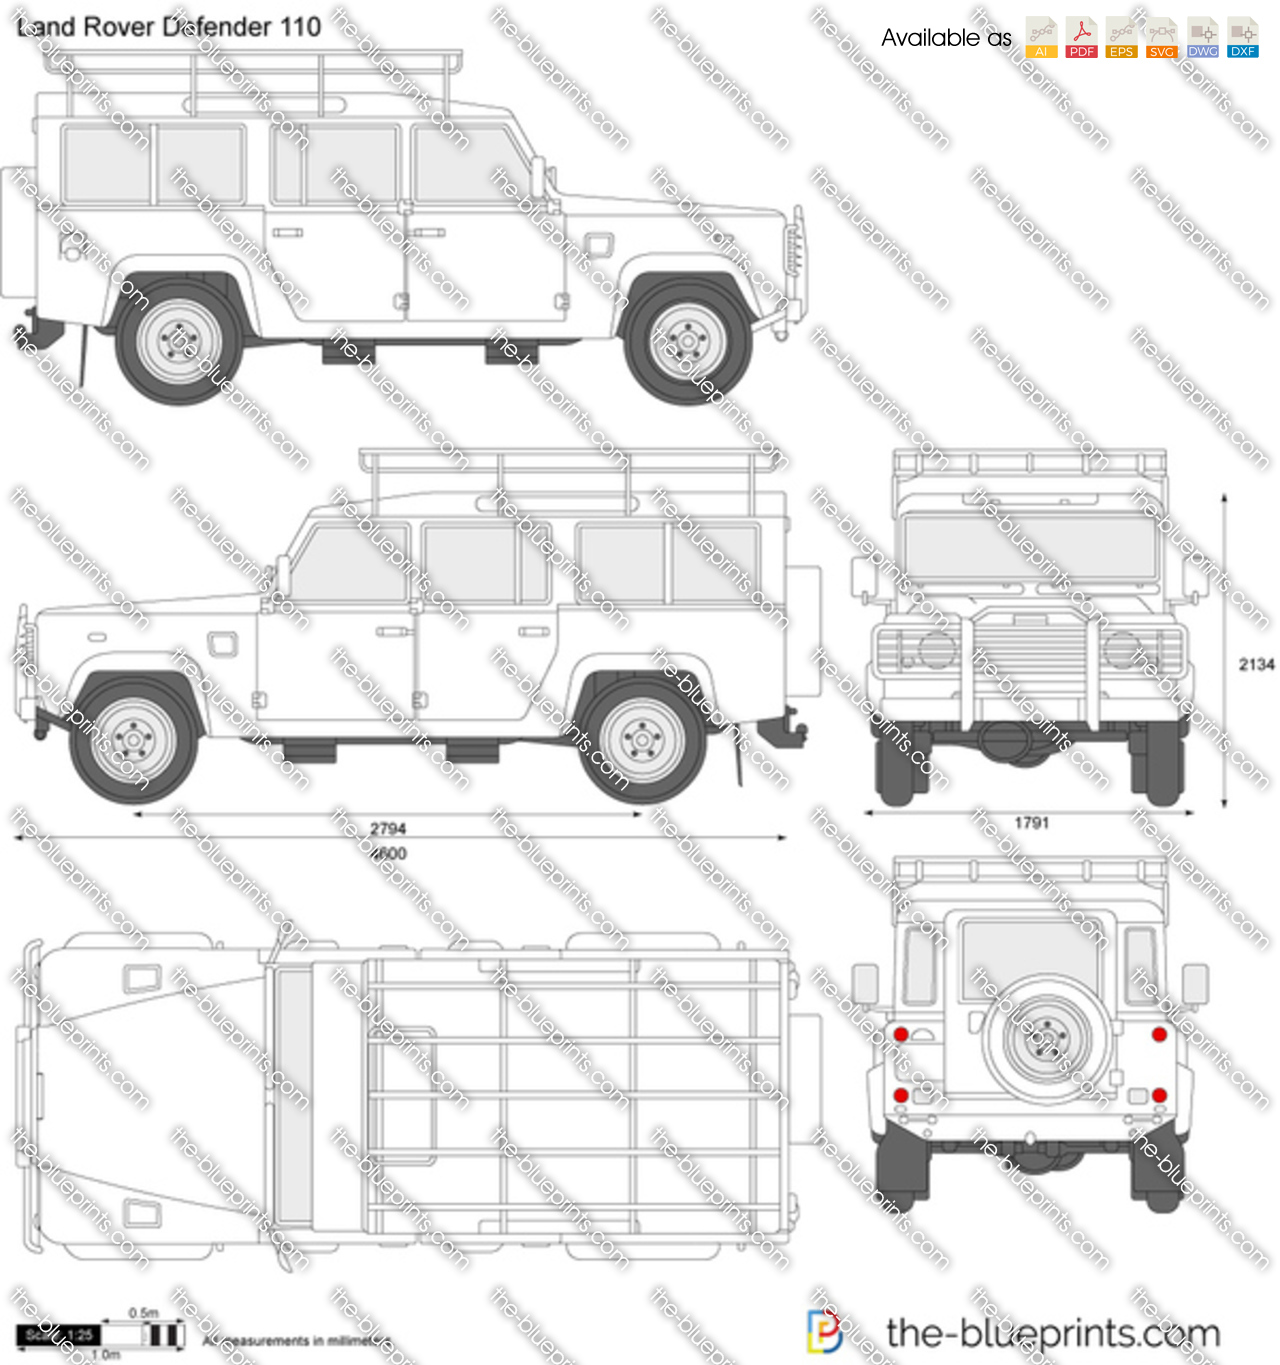 The Blueprints Com Vector Drawing Land Rover Defender 110